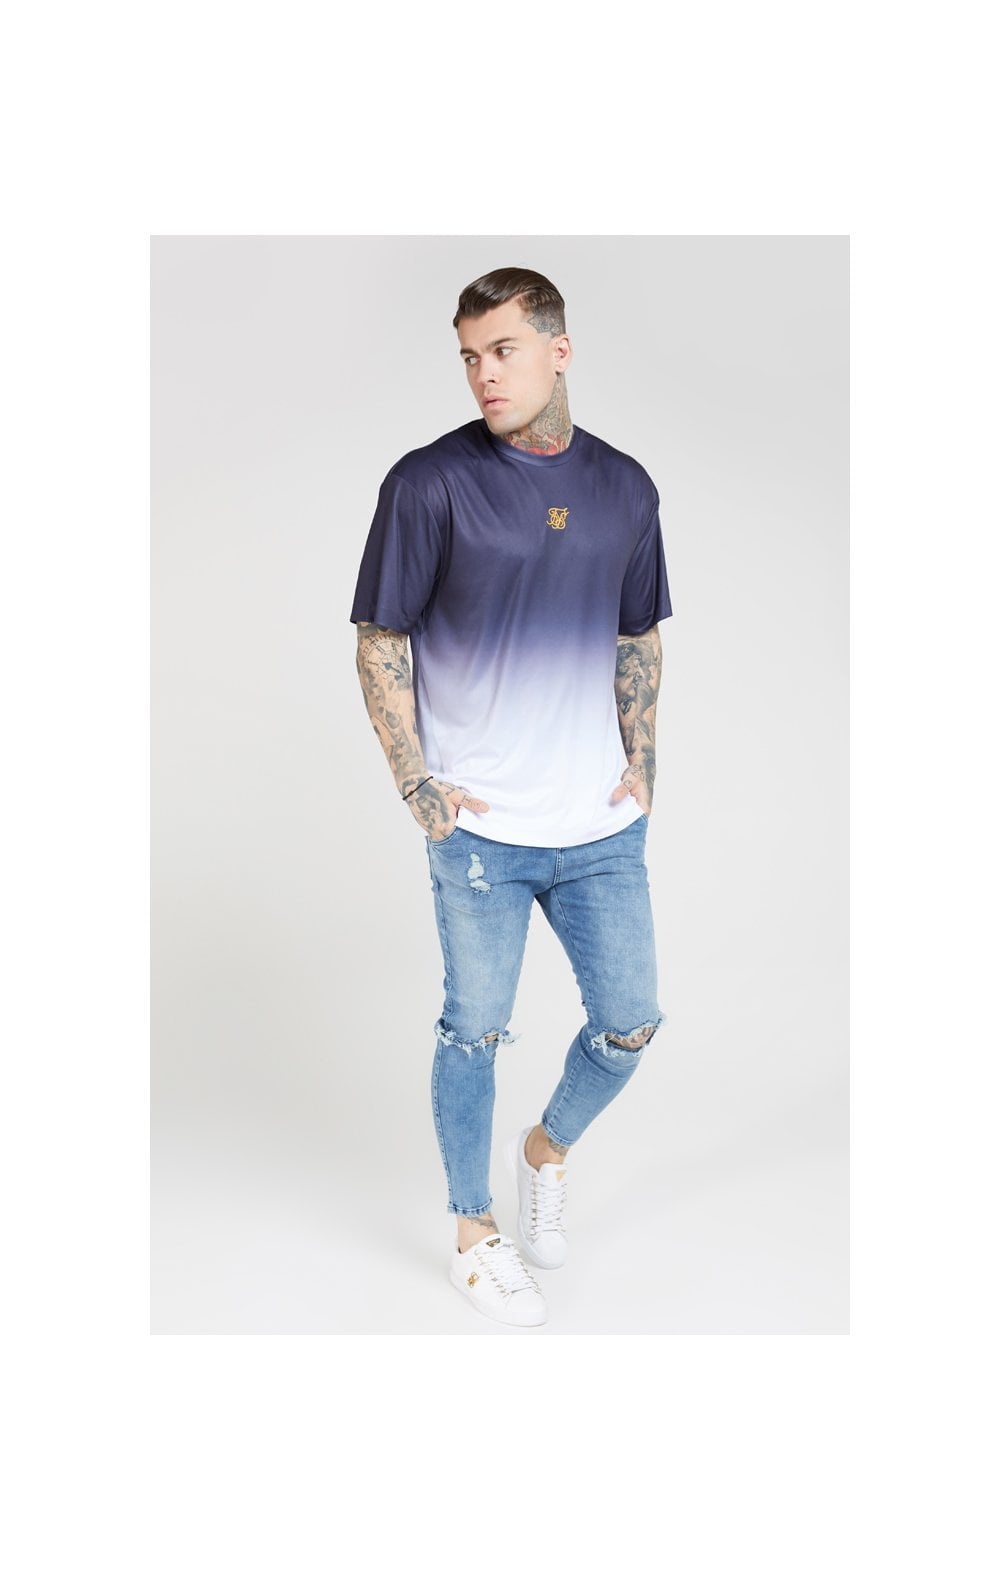 SikSilk S/S Essential Tee - Navy & White (2)